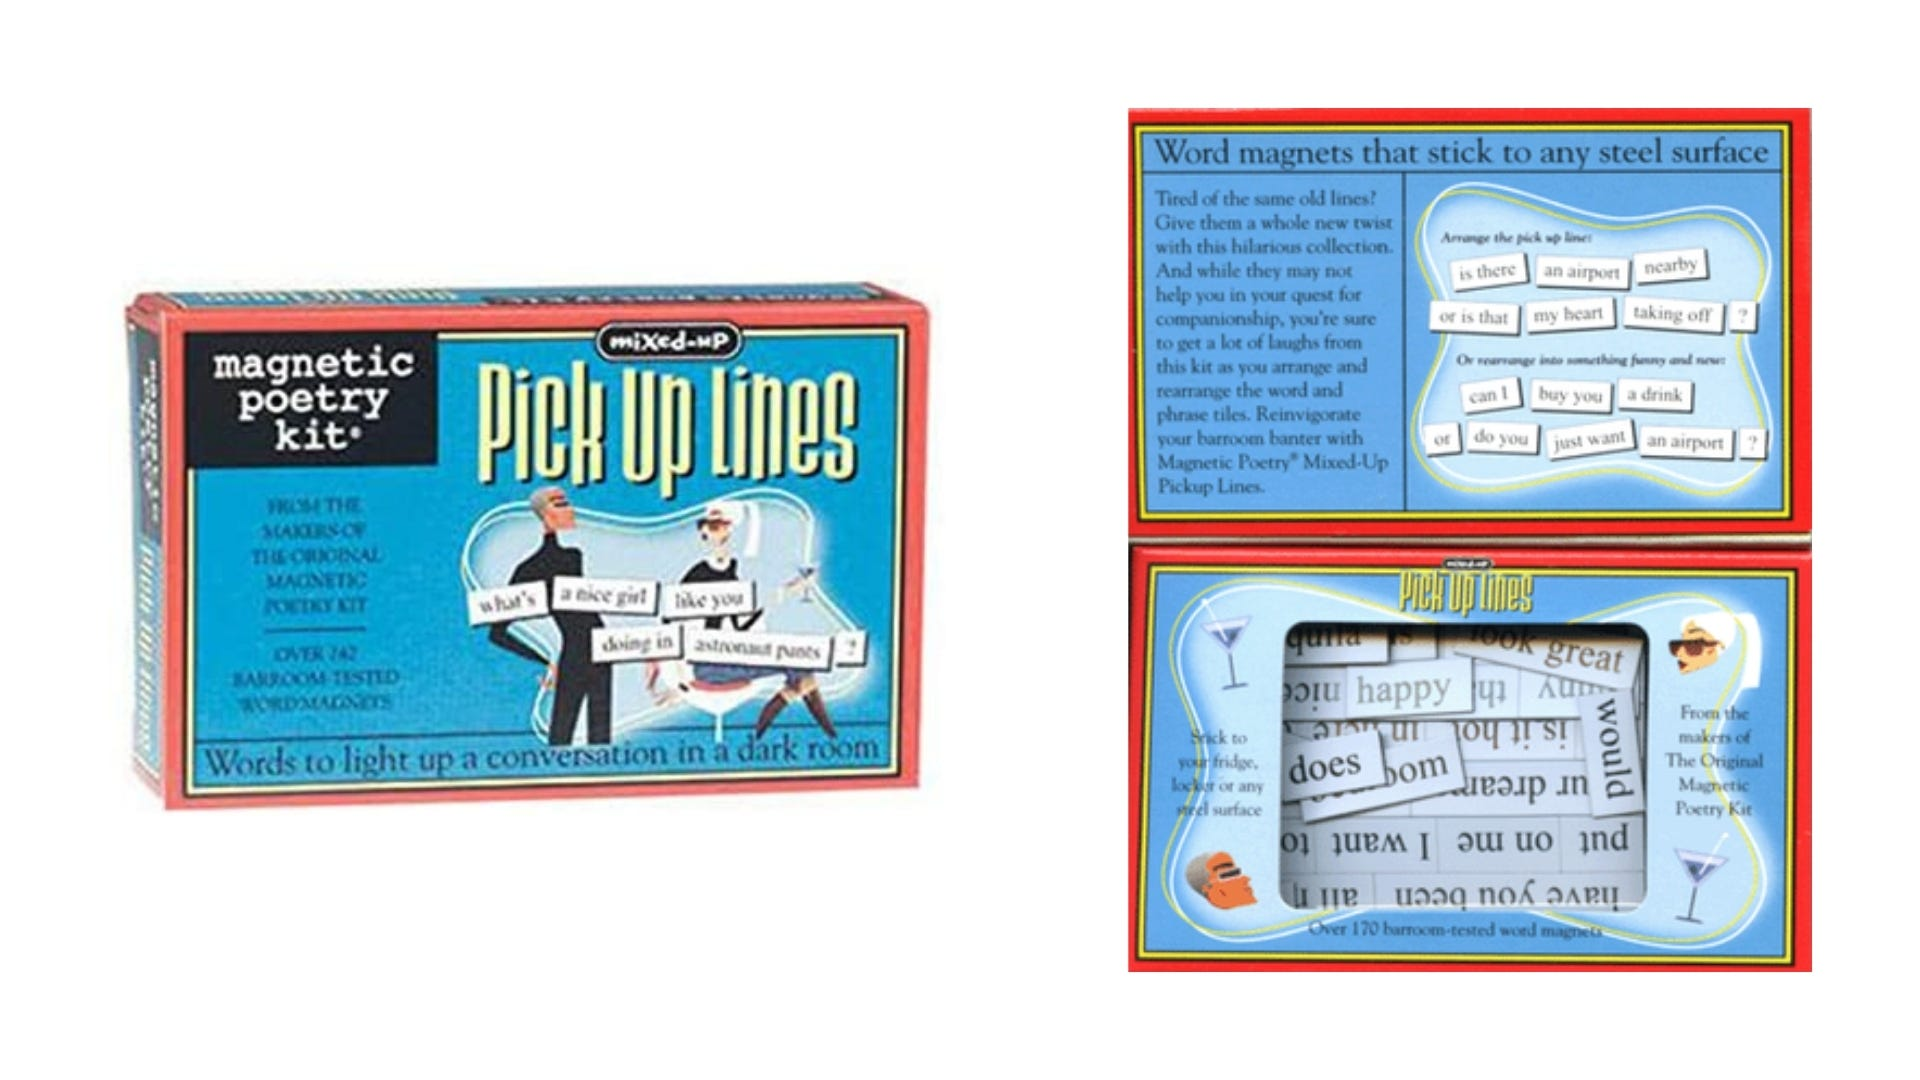 A front and inside view of the Mixed-Up Pick Up Lines Magnetic Poetry kit